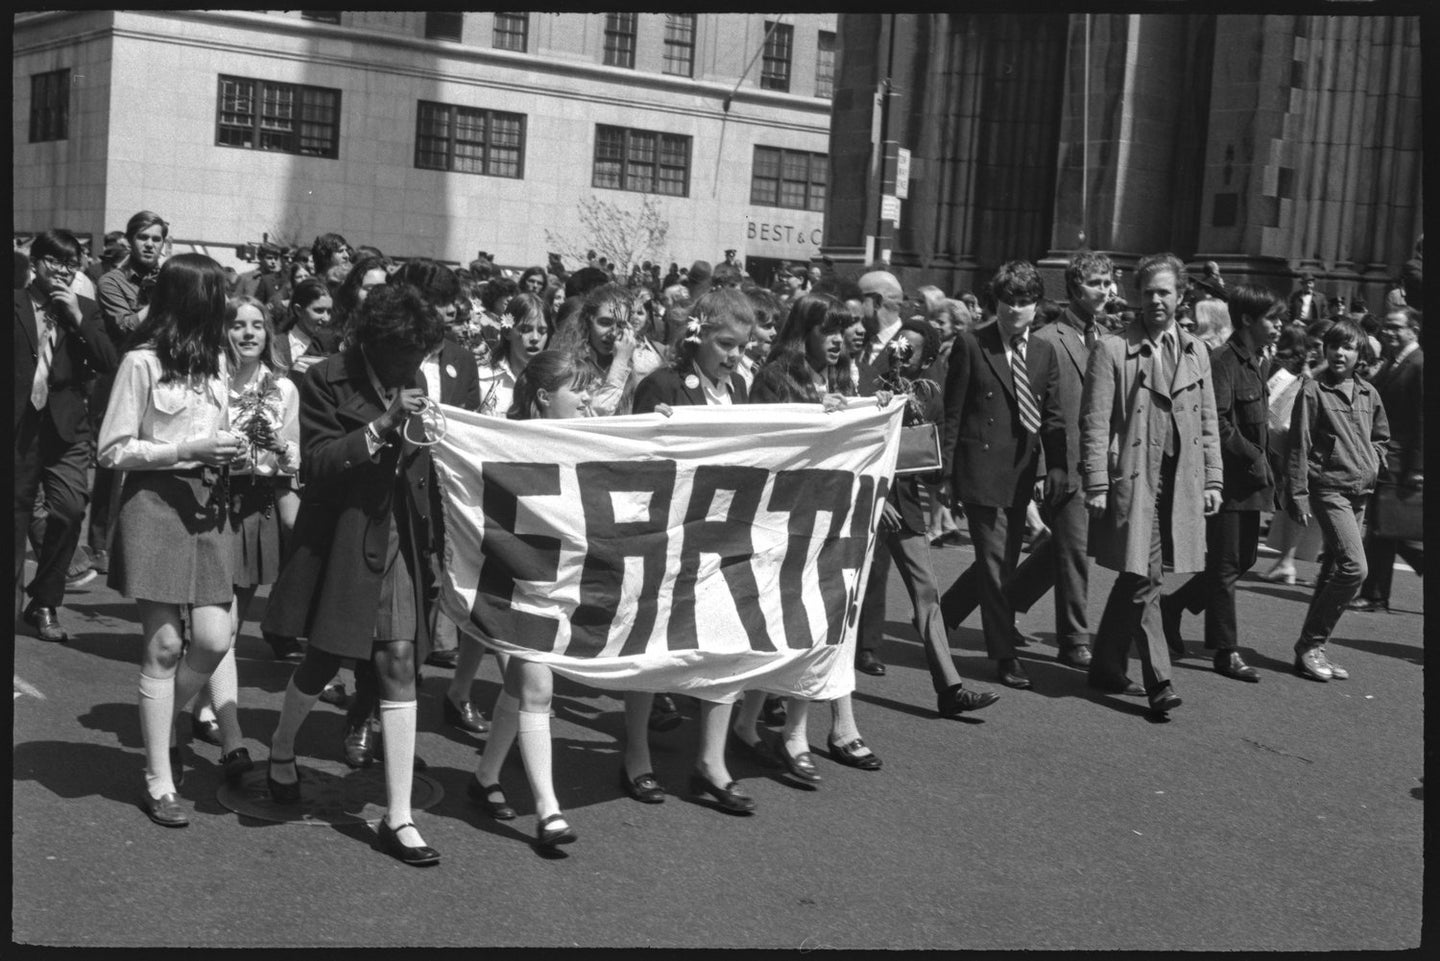 a group of New Yorkers participating in the 1970 Earth Day demonstrations in New York City